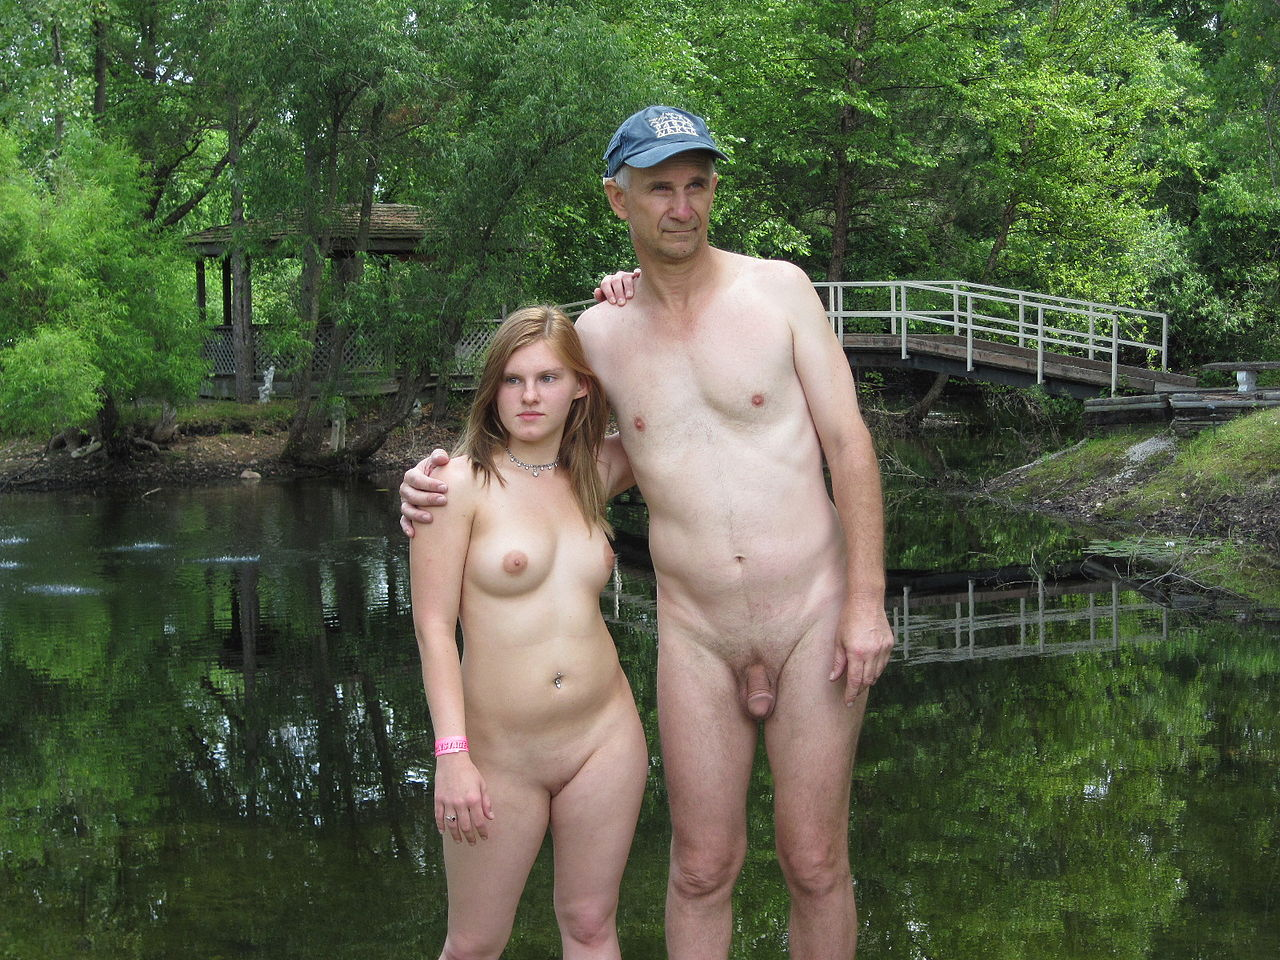 Father and daugther nude picture